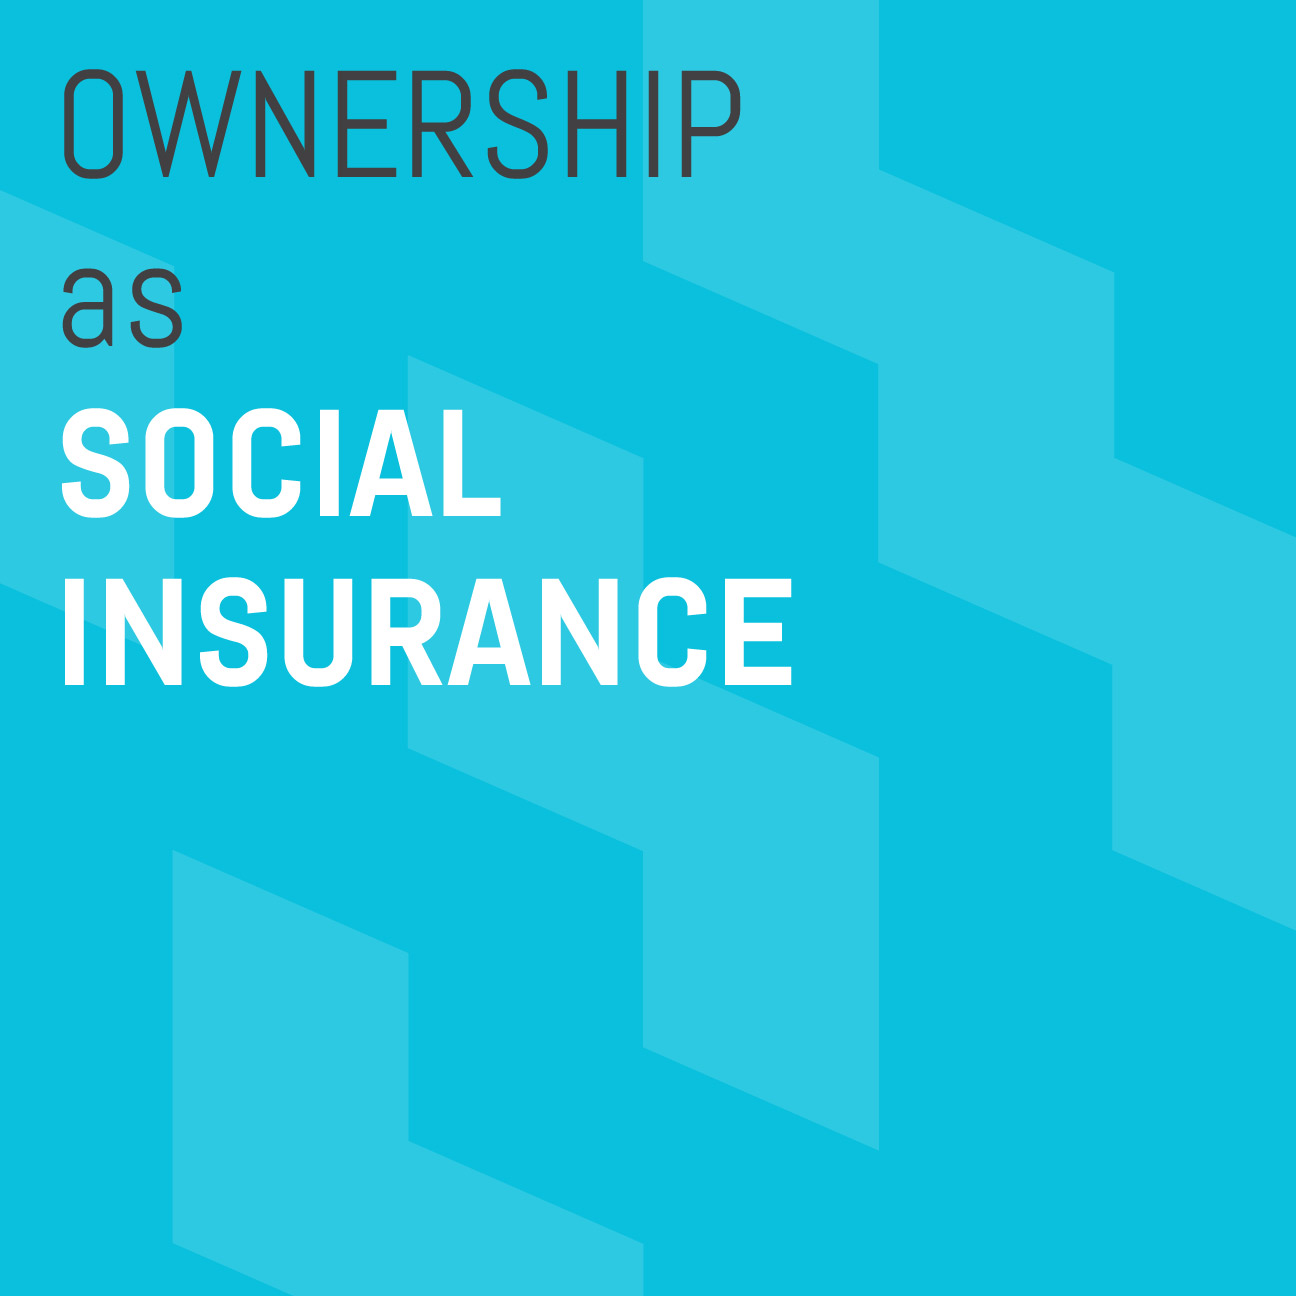 Ownership-as-Social-Insurance.jpg